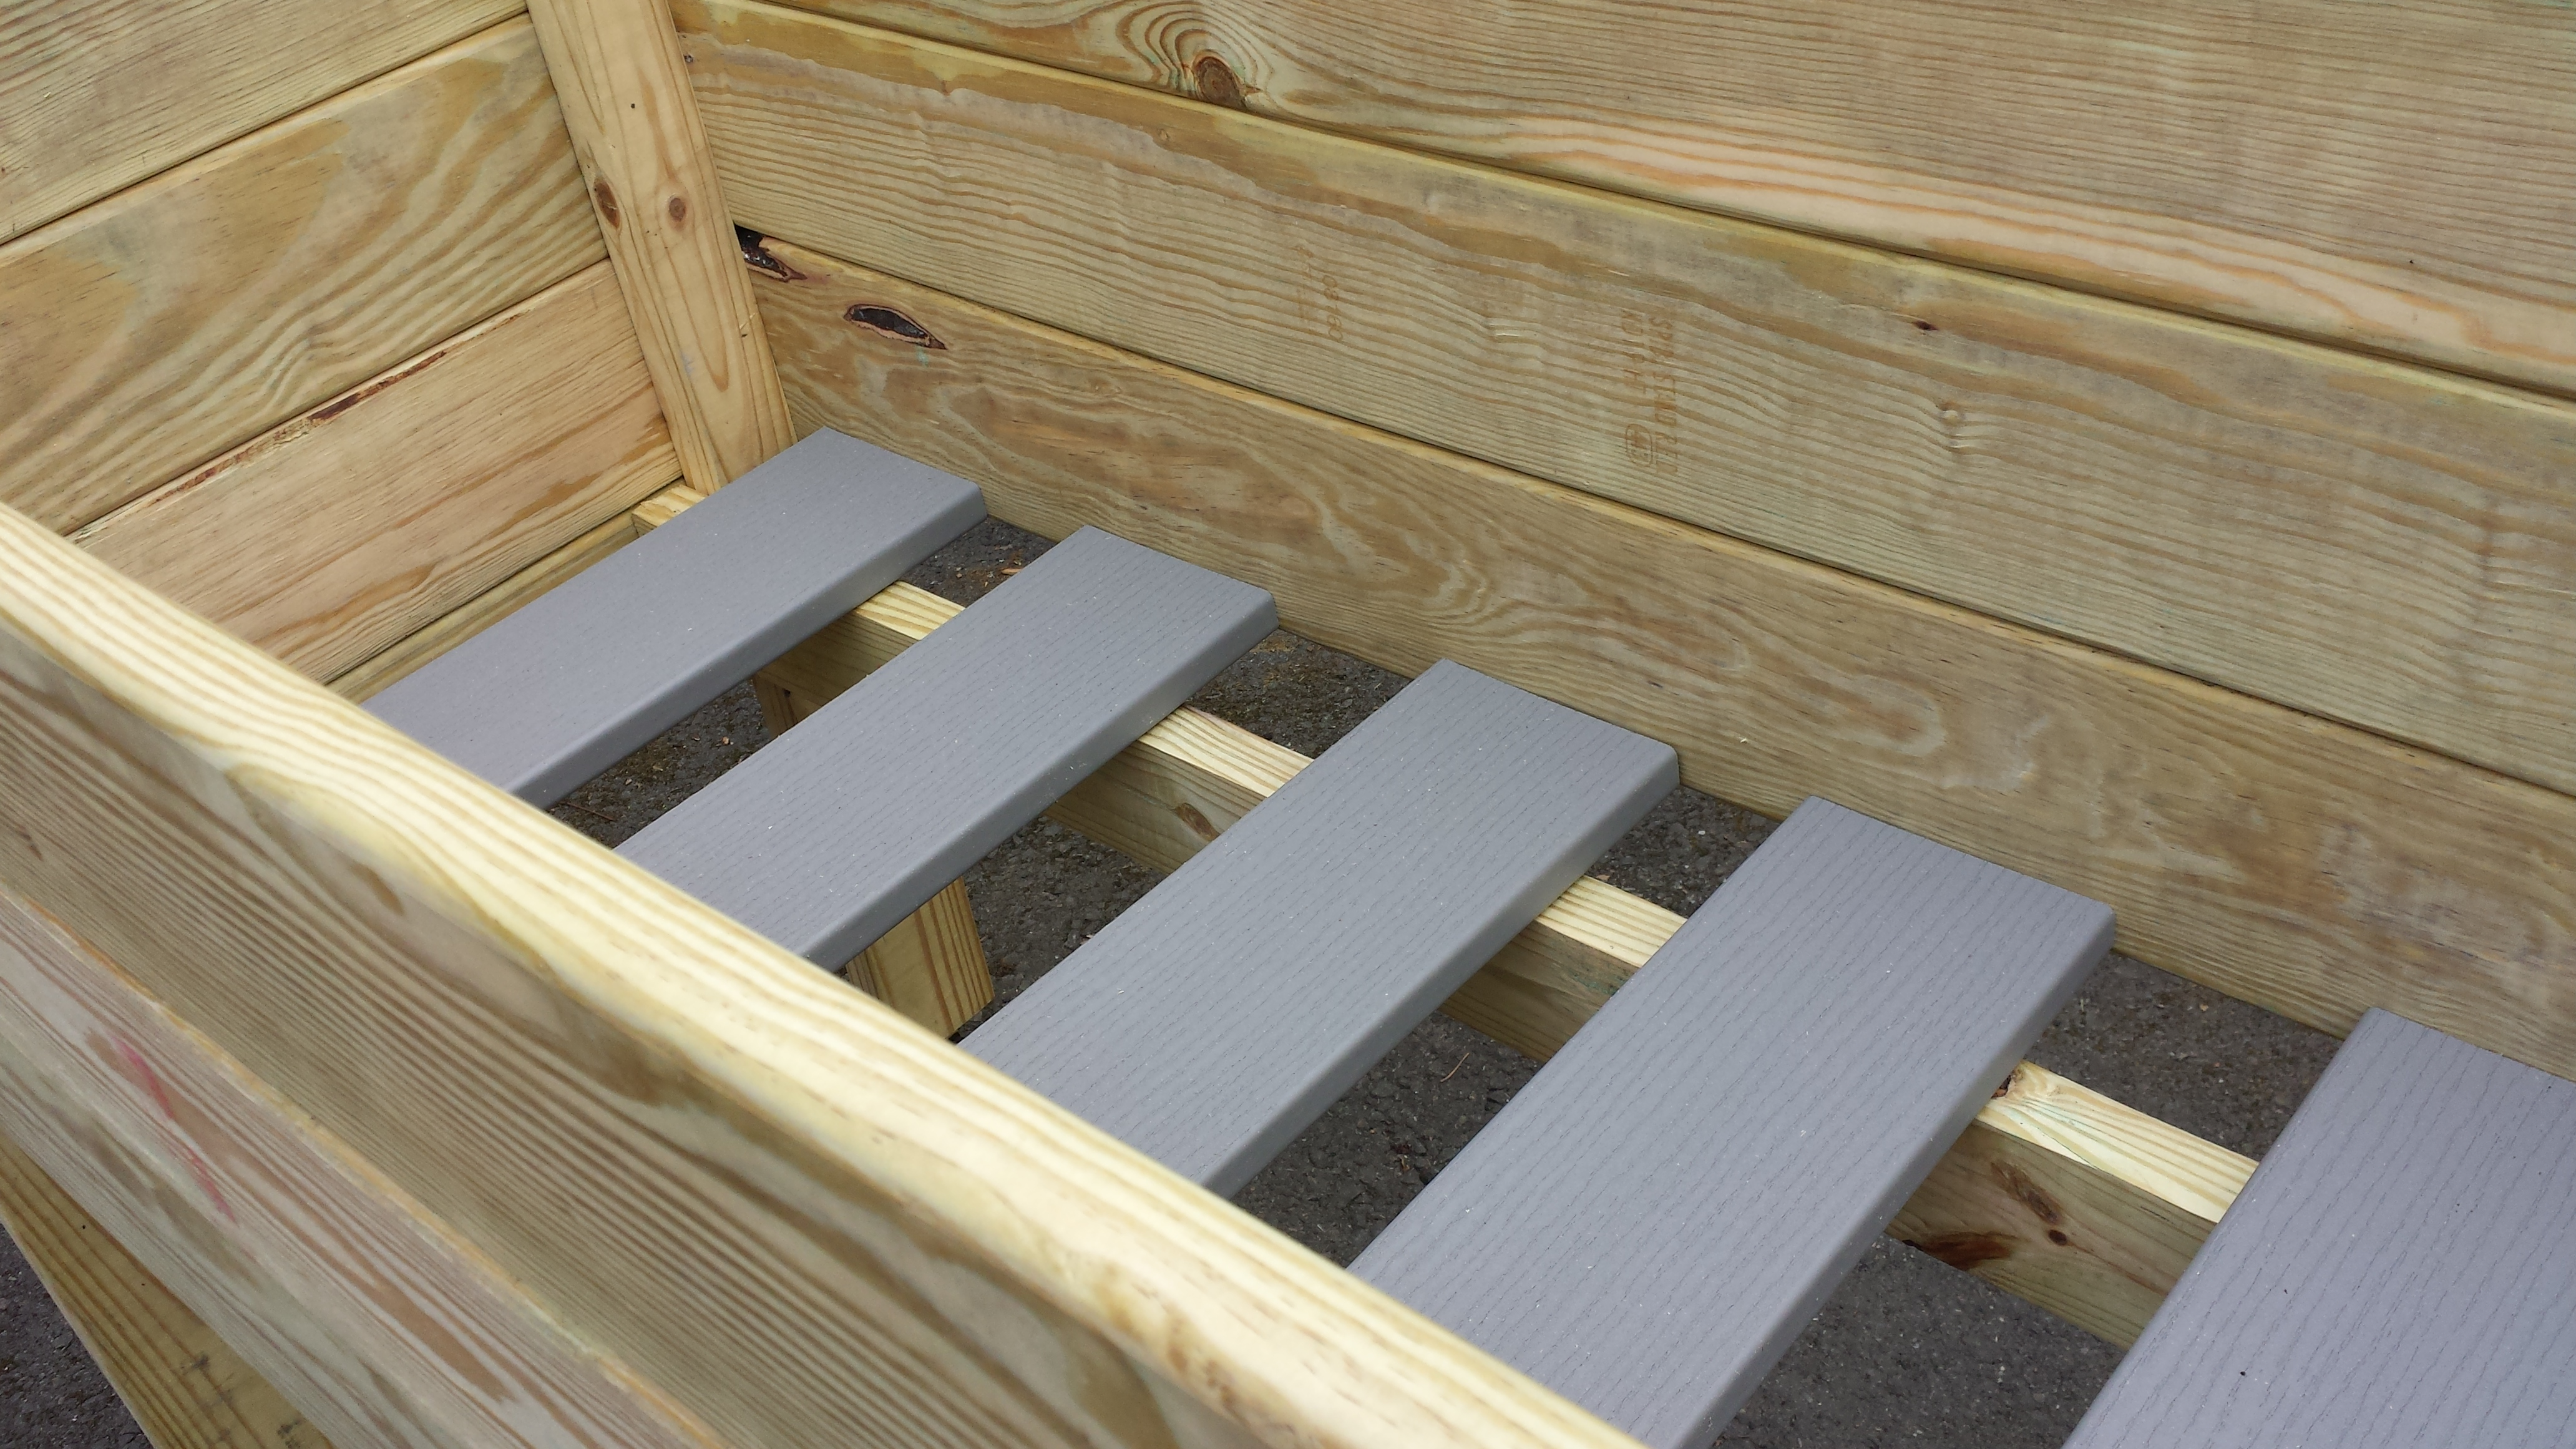 Movable Trex slats allow for great drainage